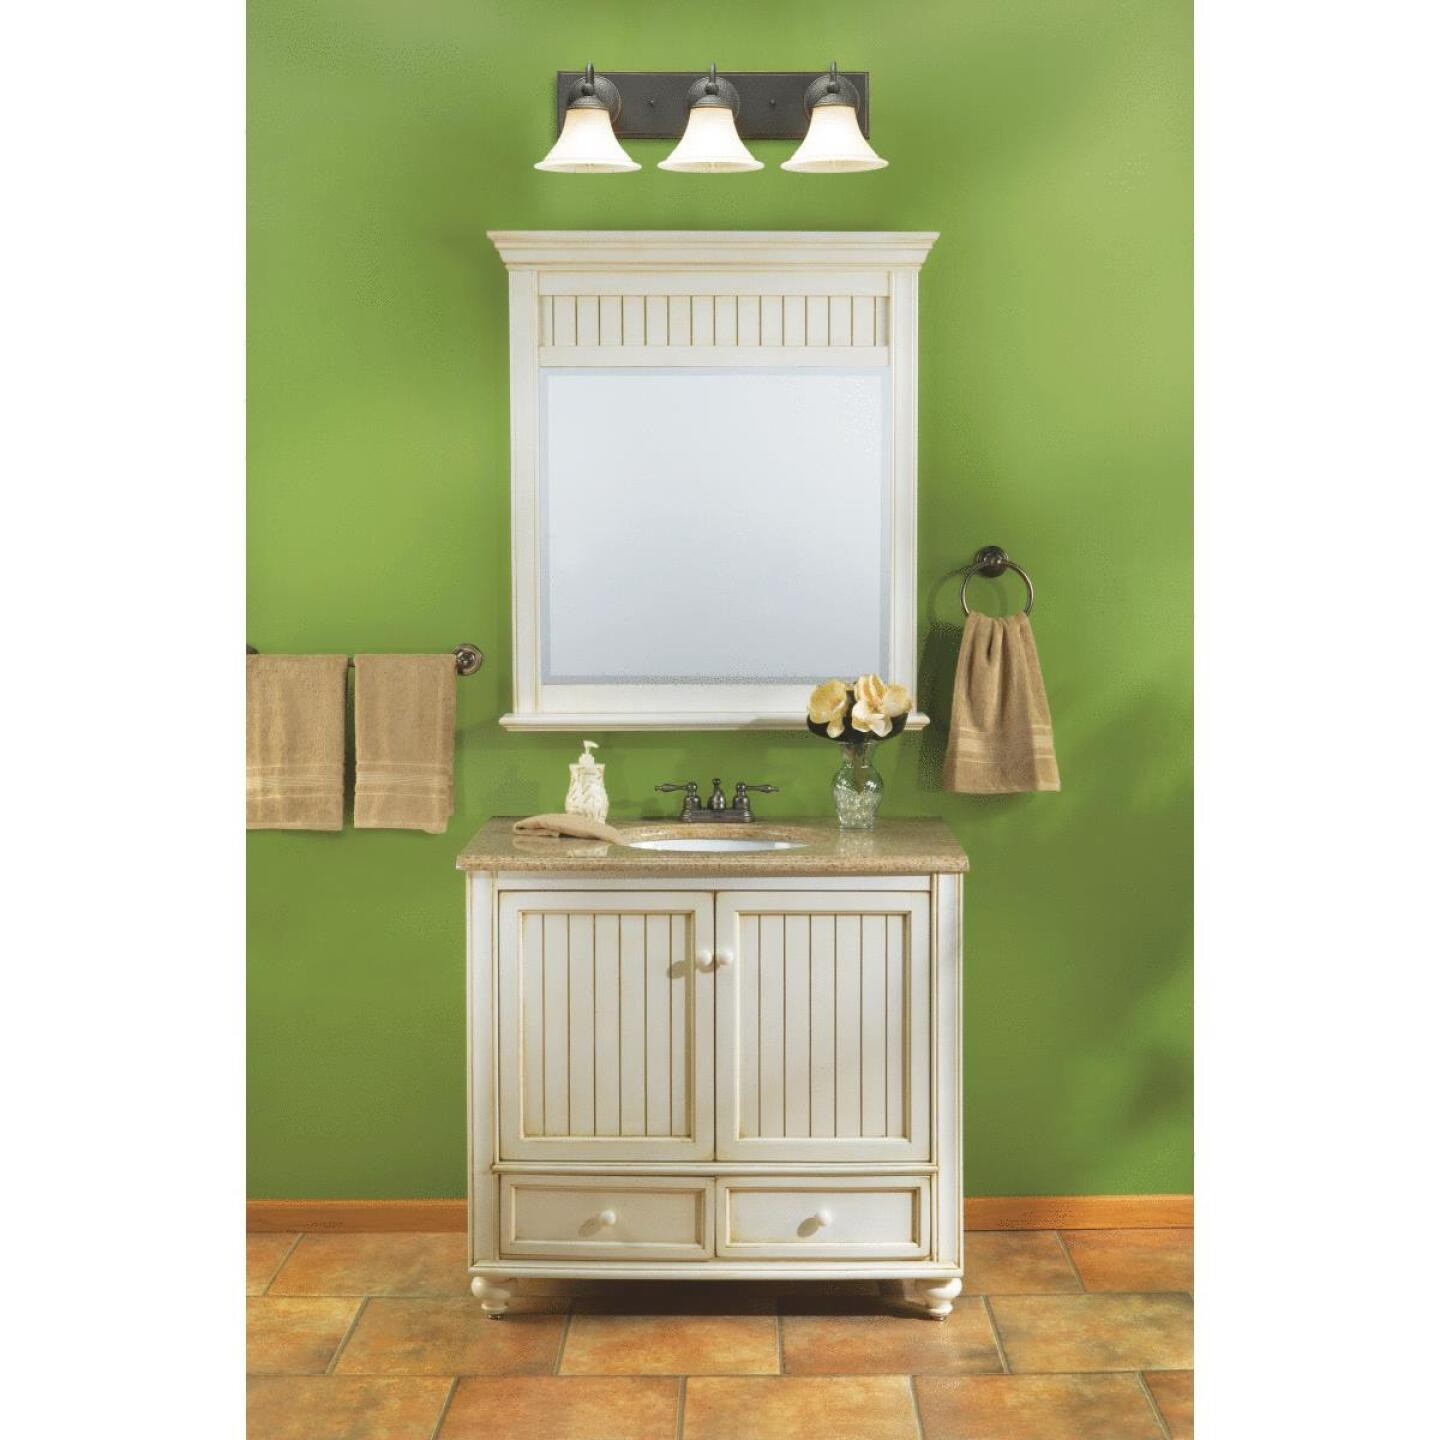 Sunny Wood Bristol Beach White 36 In. W x 34 In. H x 21 In. D Vanity Base, 2 Door/2 Drawer Image 5